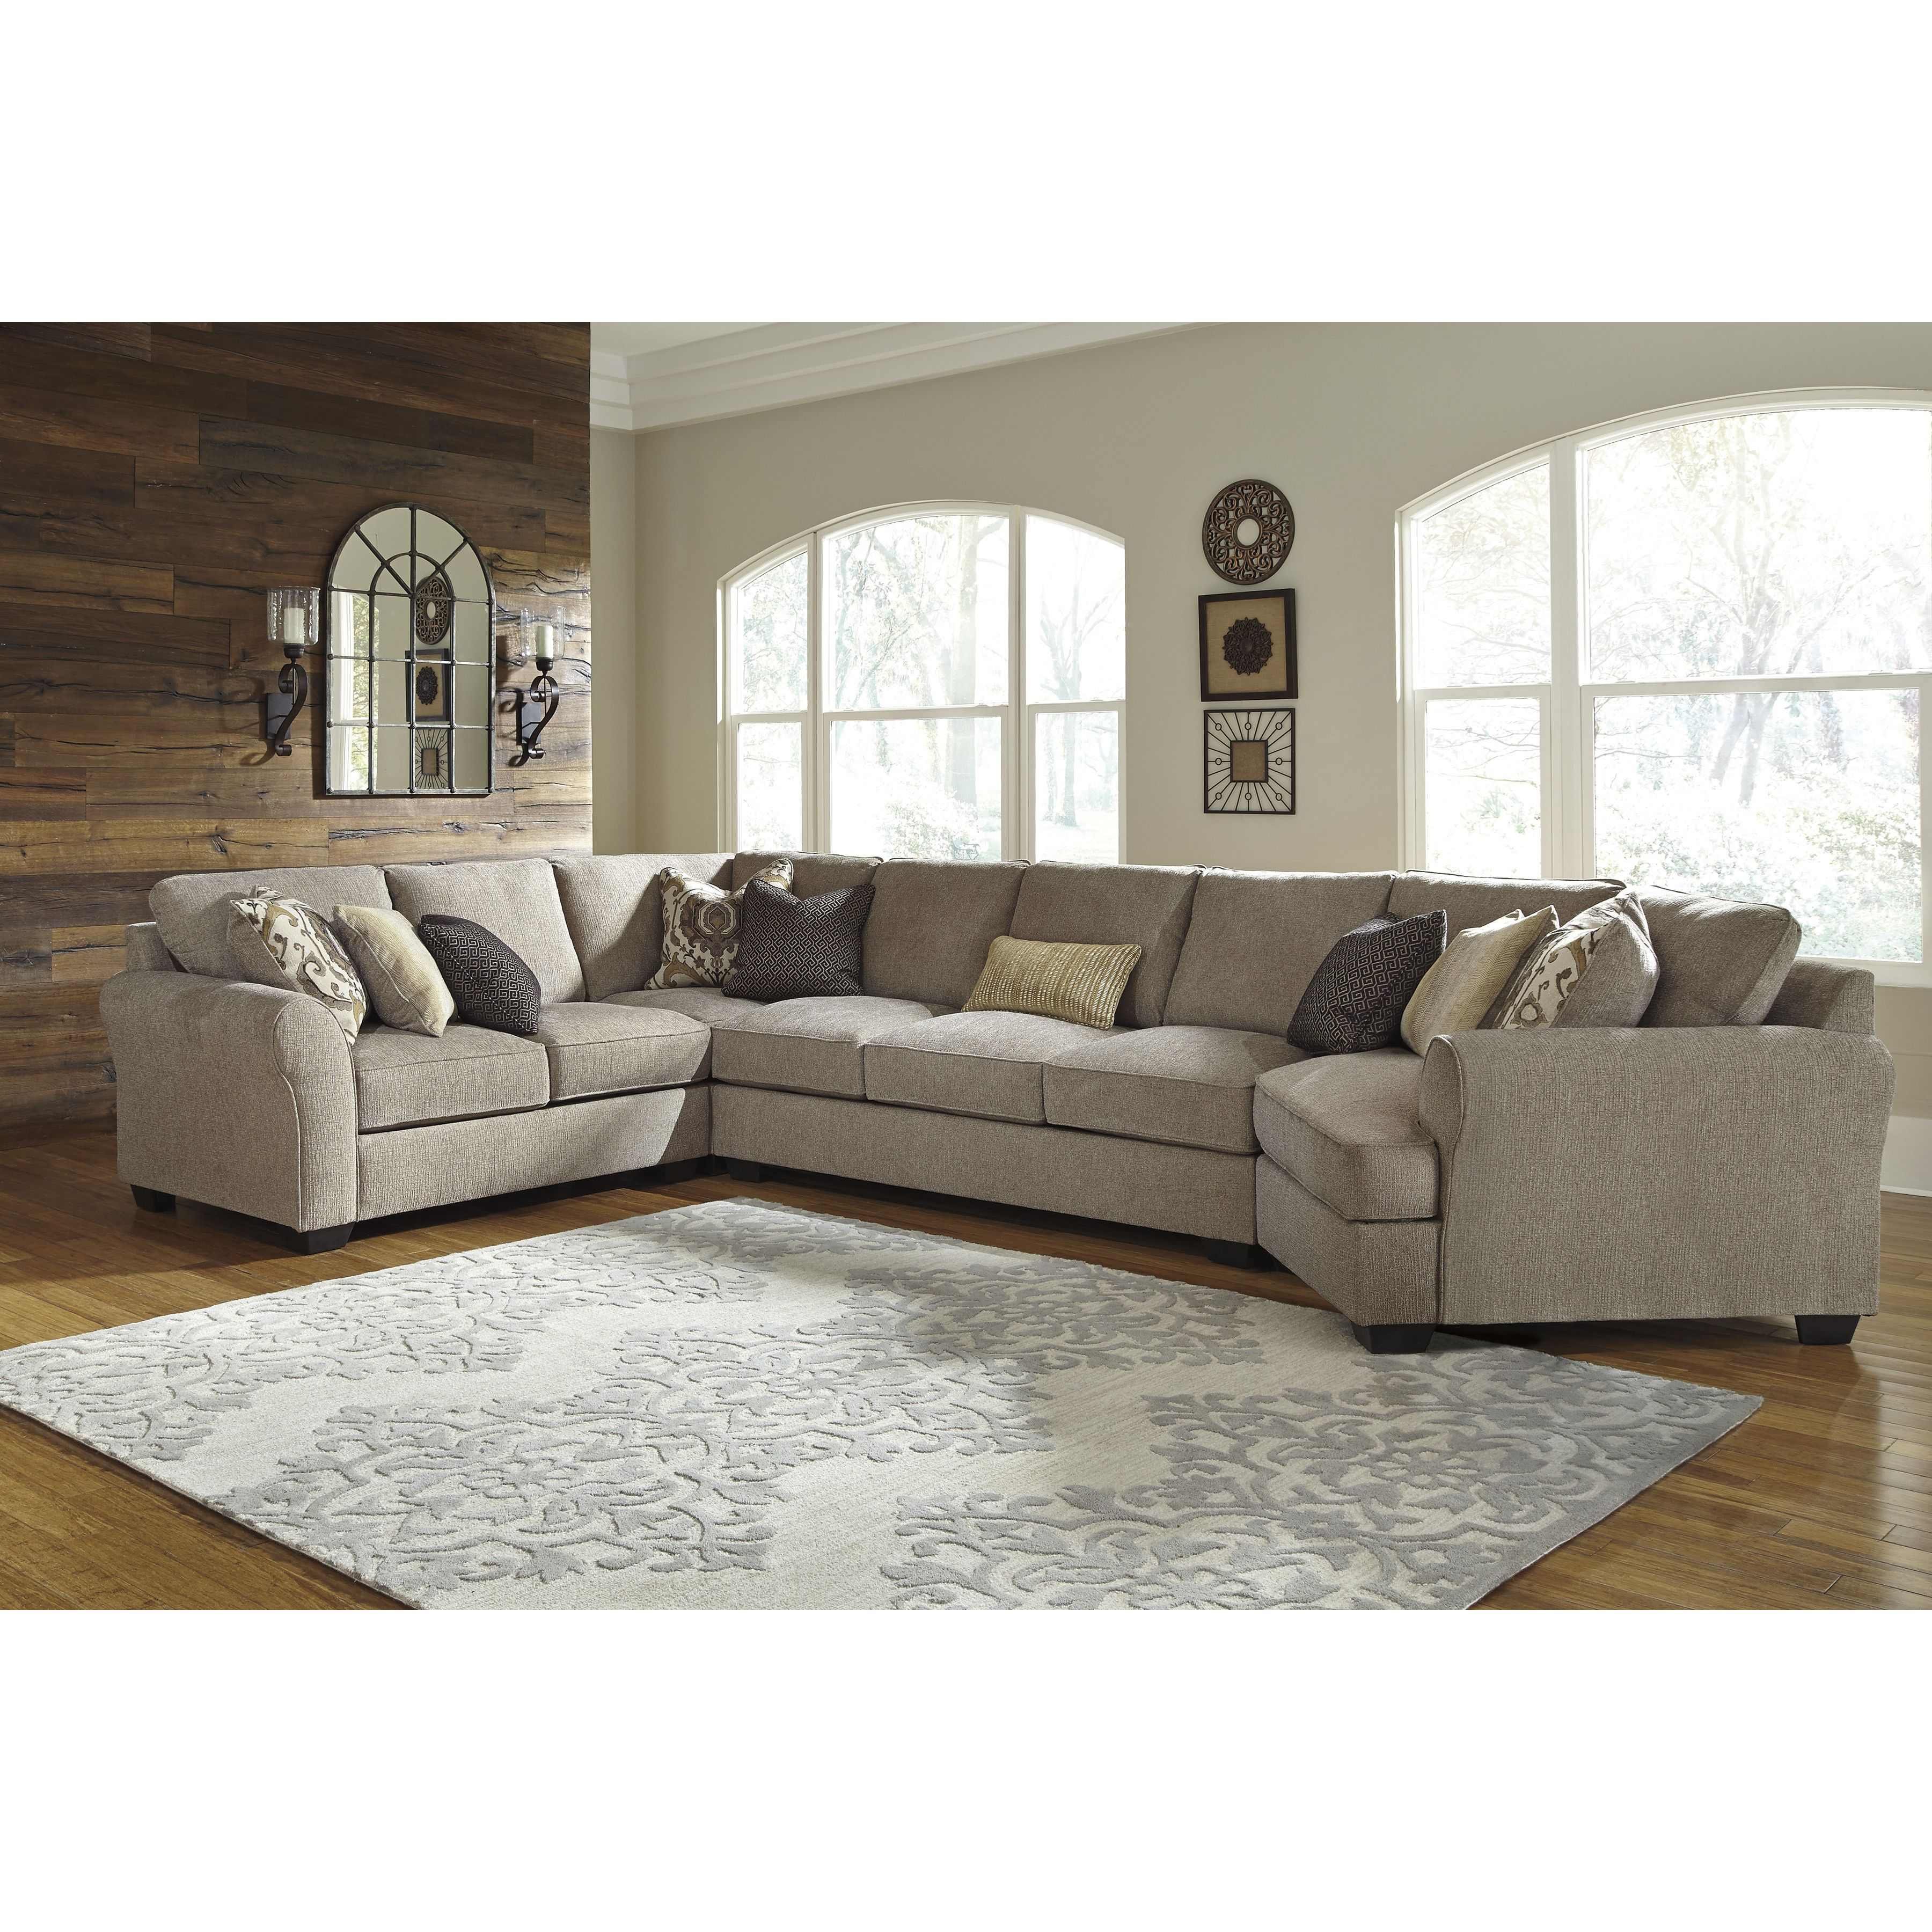 Benchcraft Pantomine Large Cuddler Sectional Living Room Sectional Sectional Sofa City Furniture